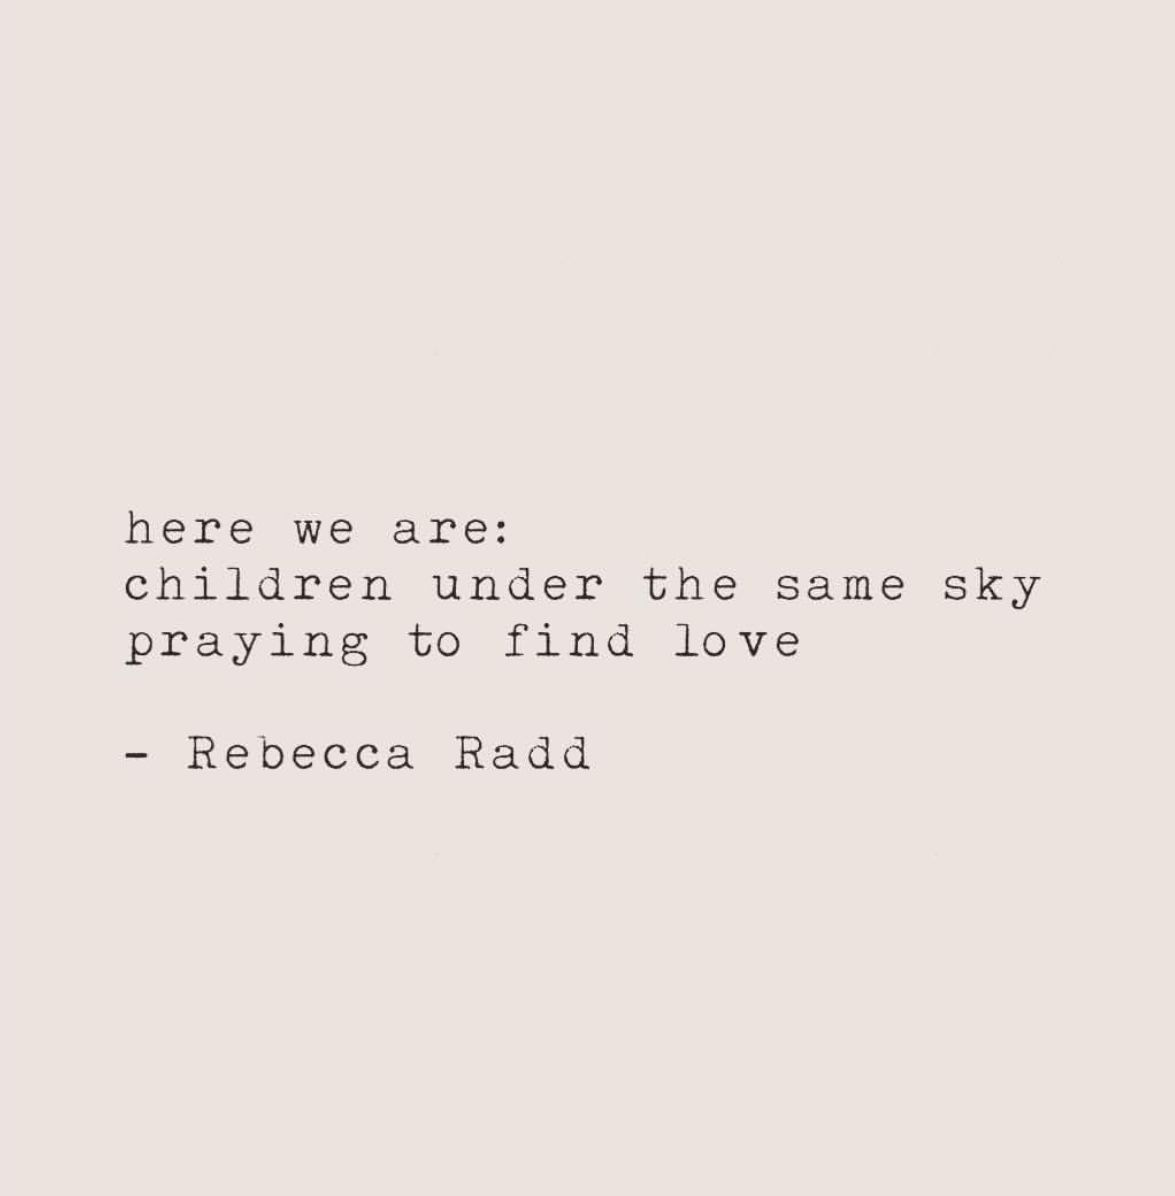 Pin By Rebecca Radd On Quotes Friends Quotes Instagram Quotes Words